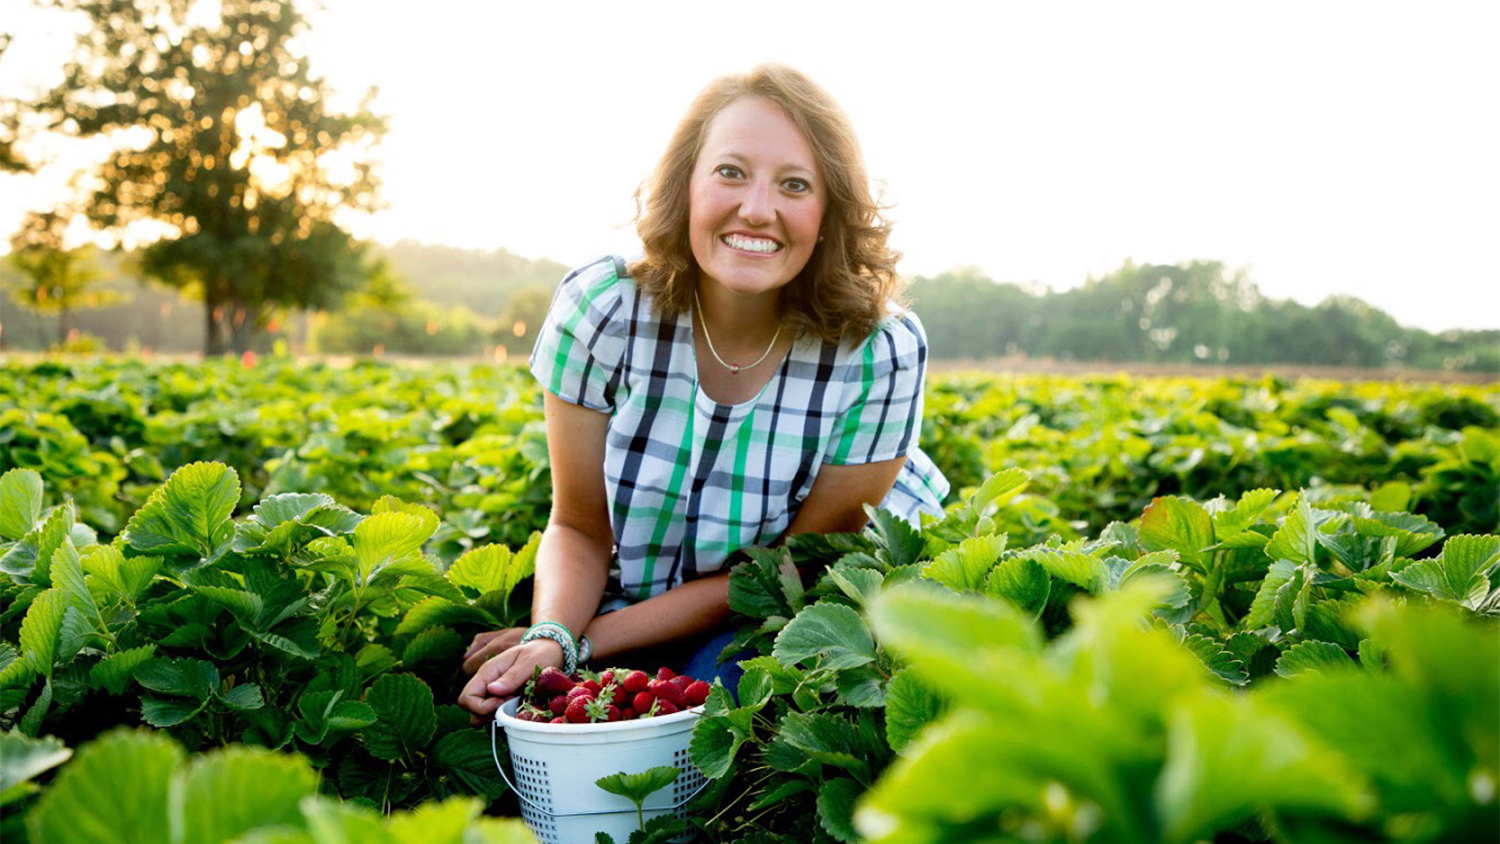 A young woman in a strawberry field with a bucket of strawberries